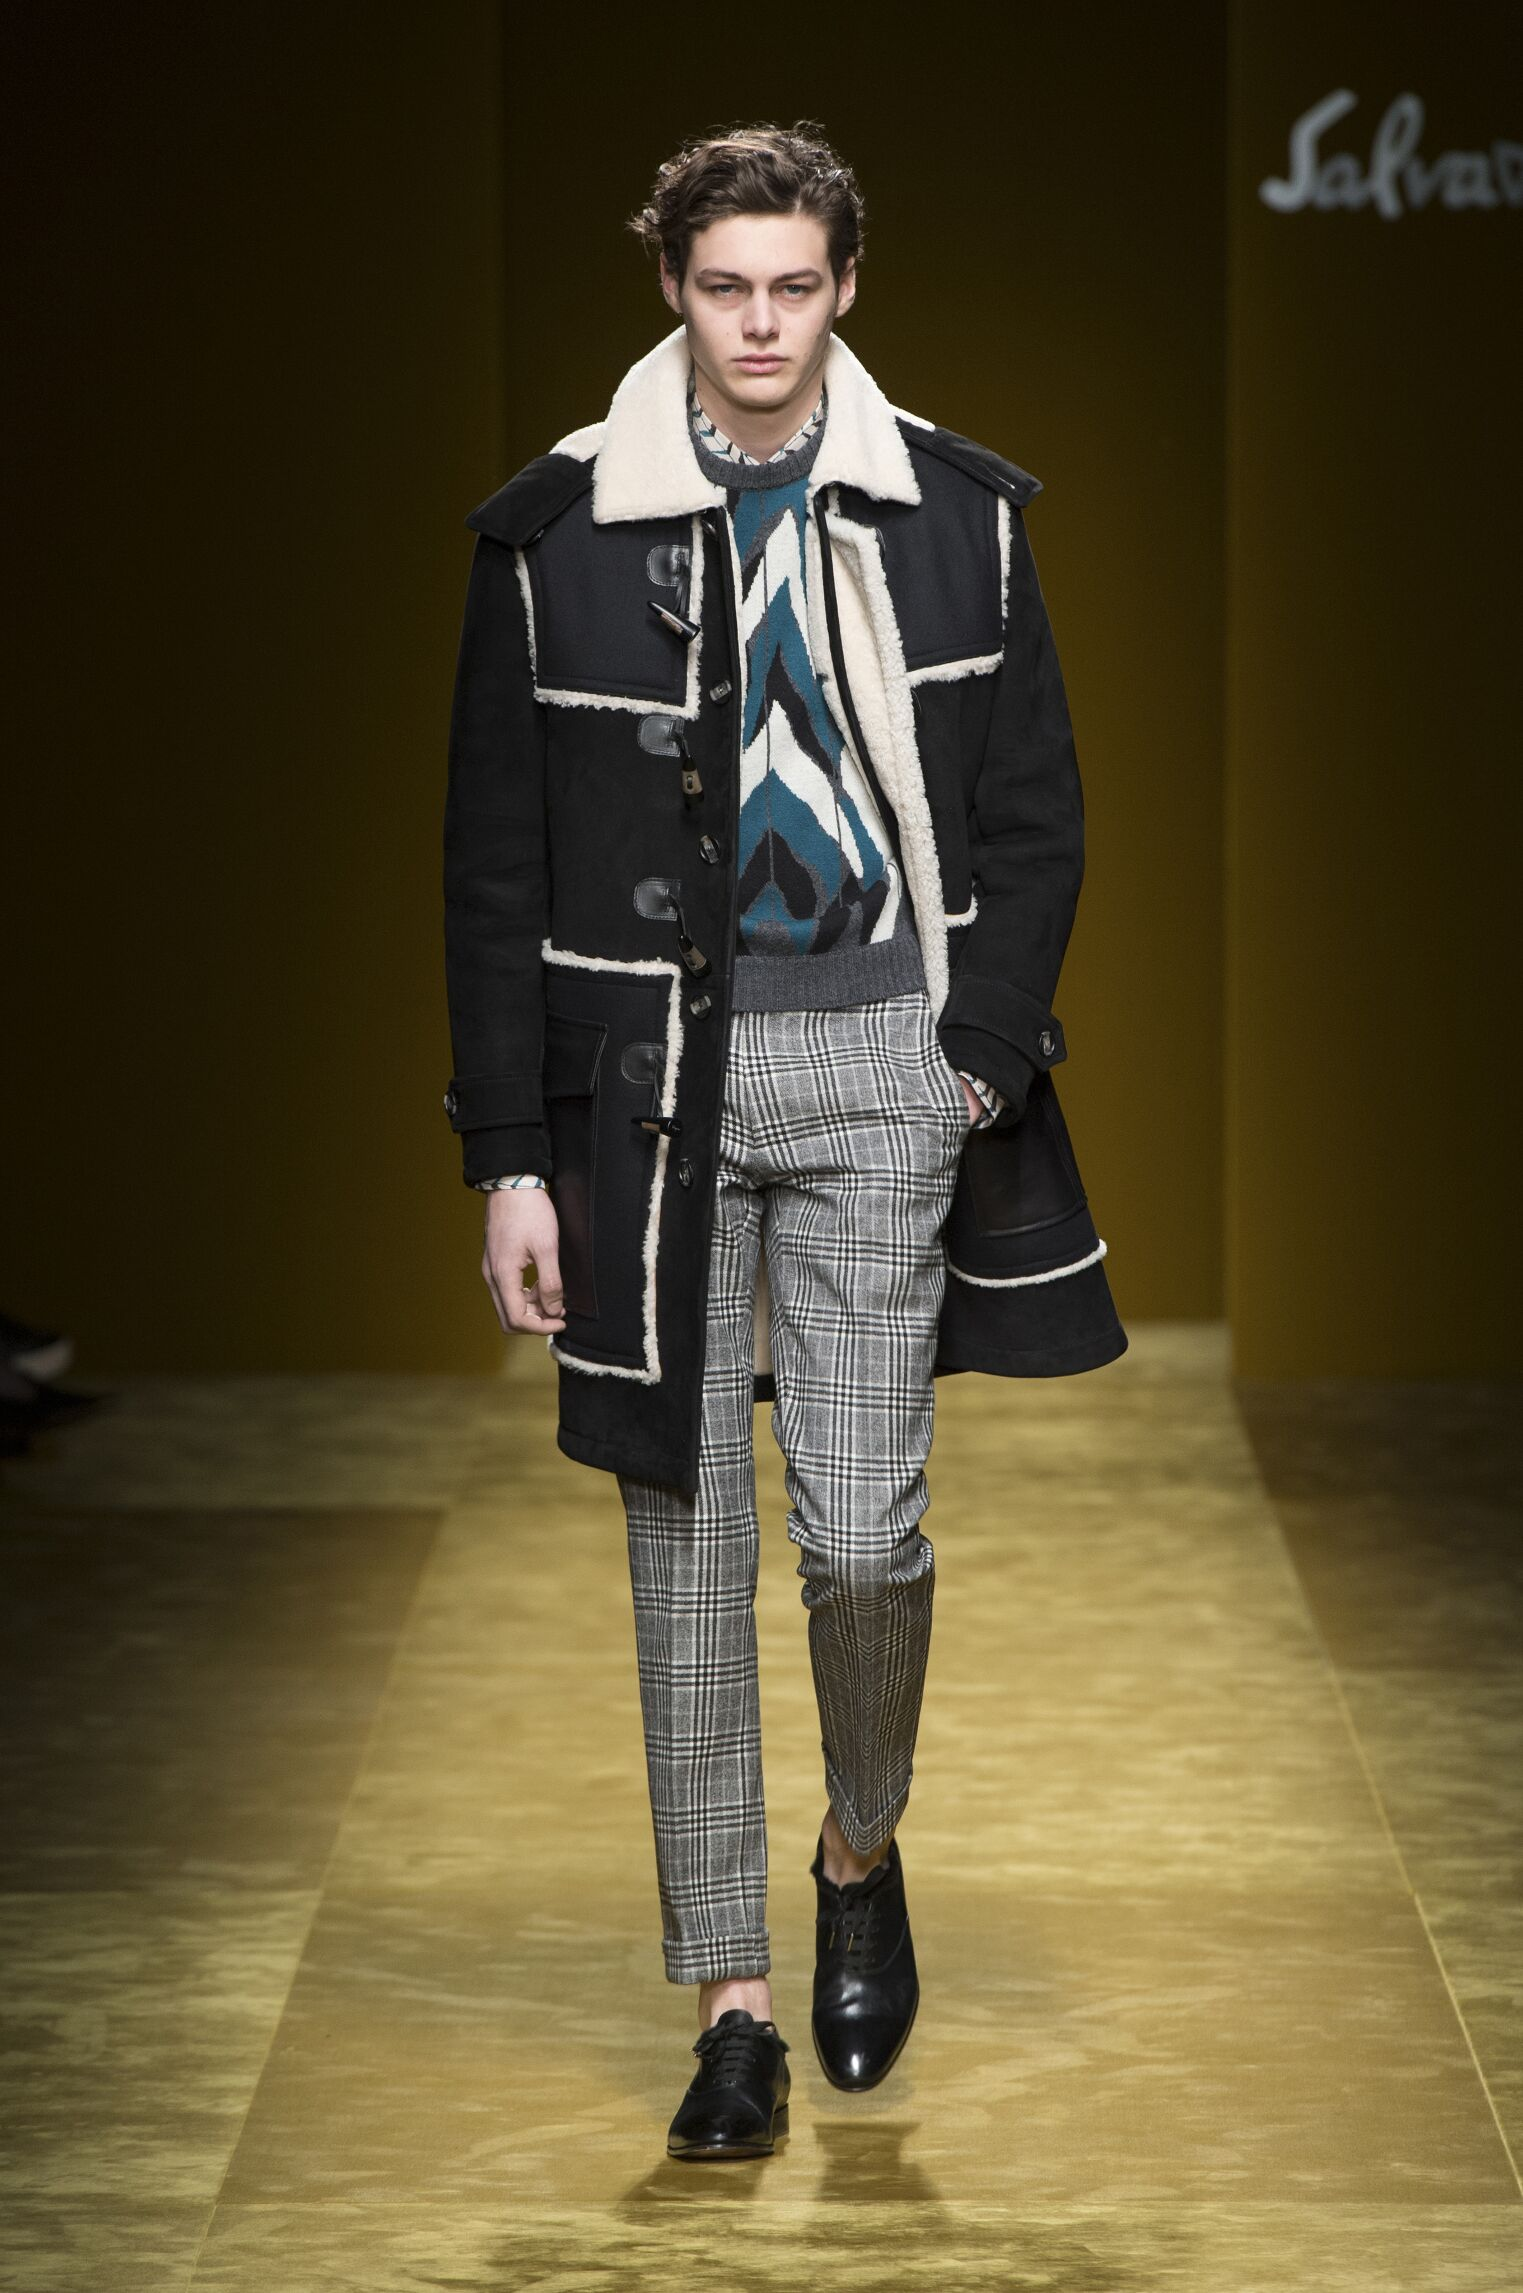 Catwalk Salvatore Ferragamo Winter 2016